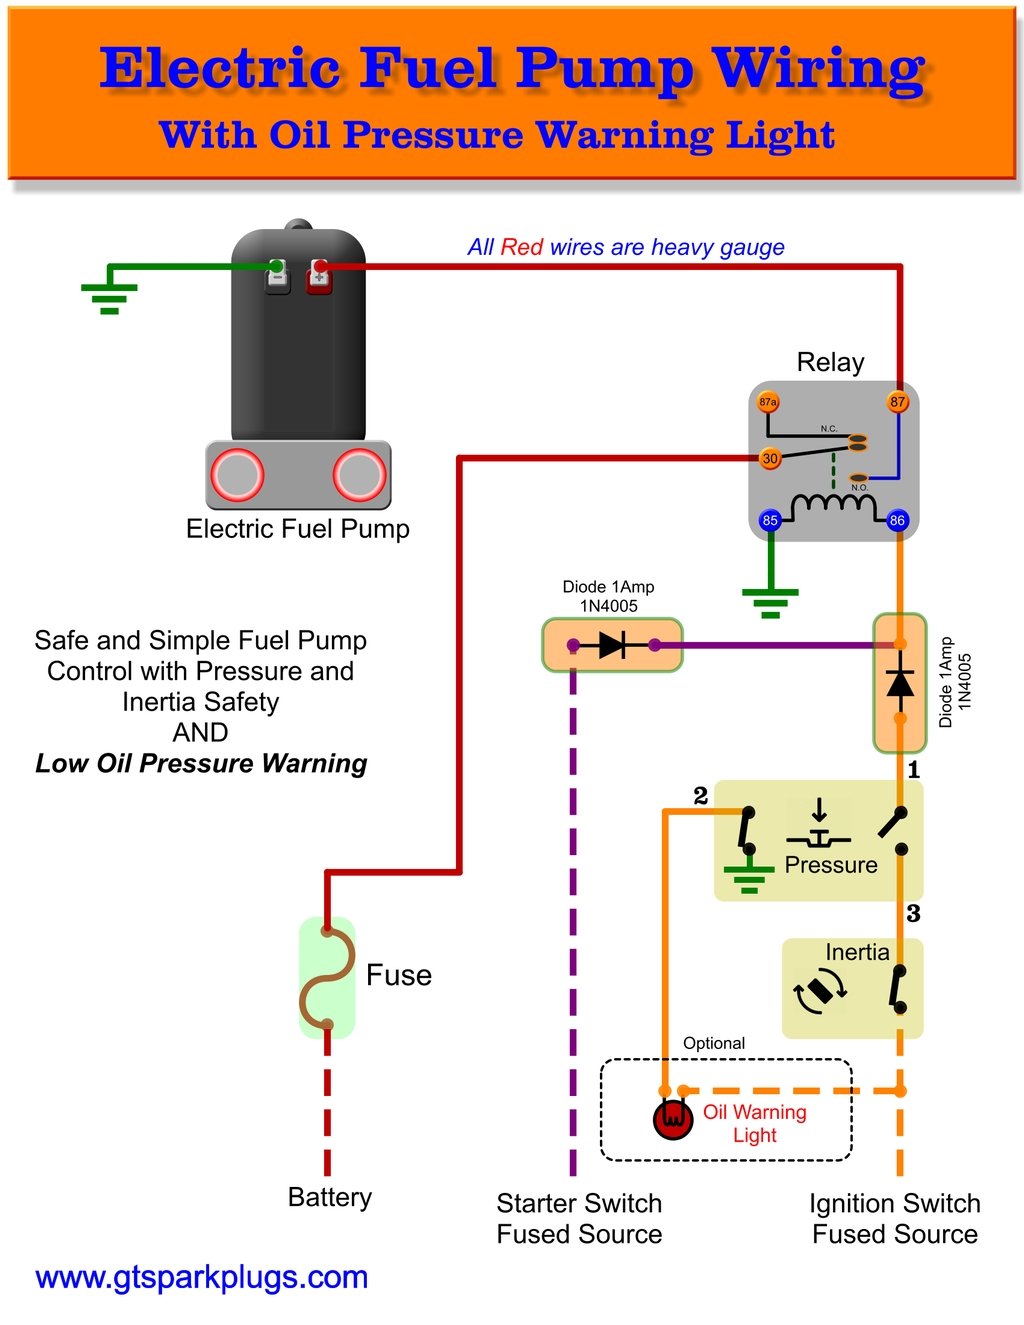 Electric Fuel Pump Wiring Diagram Gtsparkplugs Diode This Is A Simple Guide To Safer For Your Spend Some Time Things Up Right And In The Event Of Problem It Can Save You